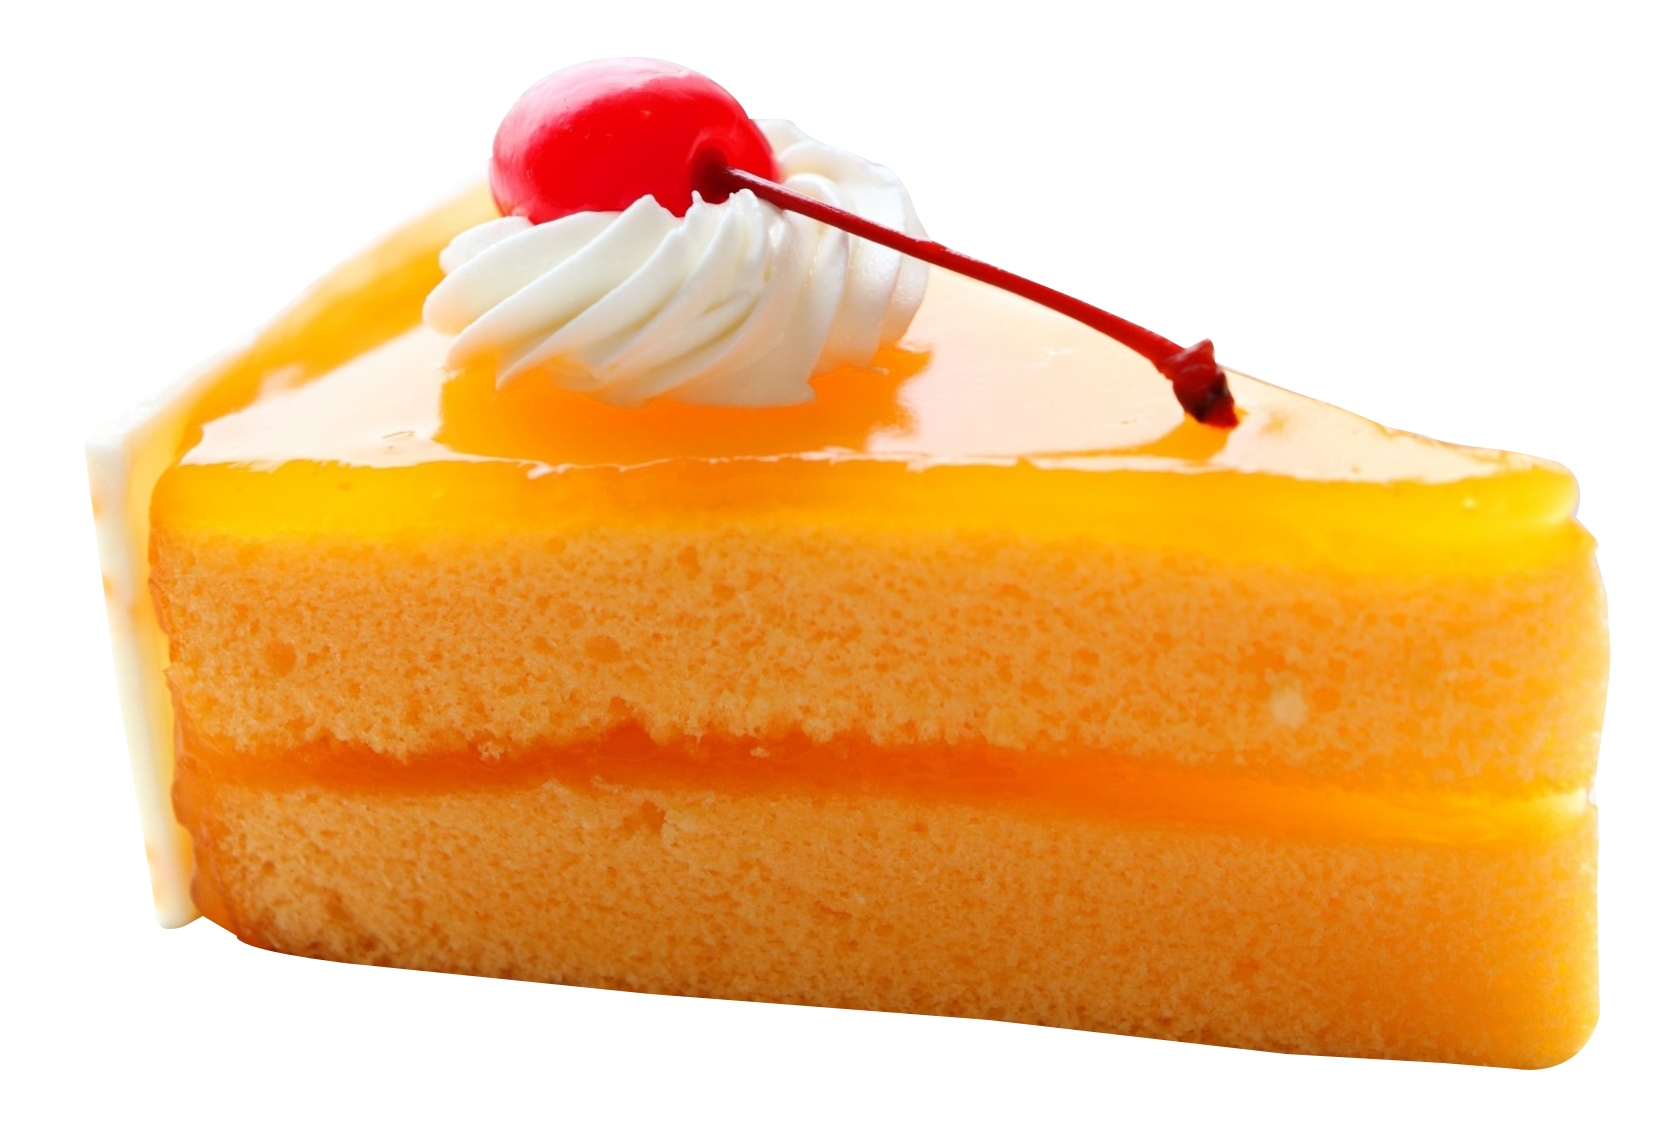 PNG Slice Of Cake - 86937